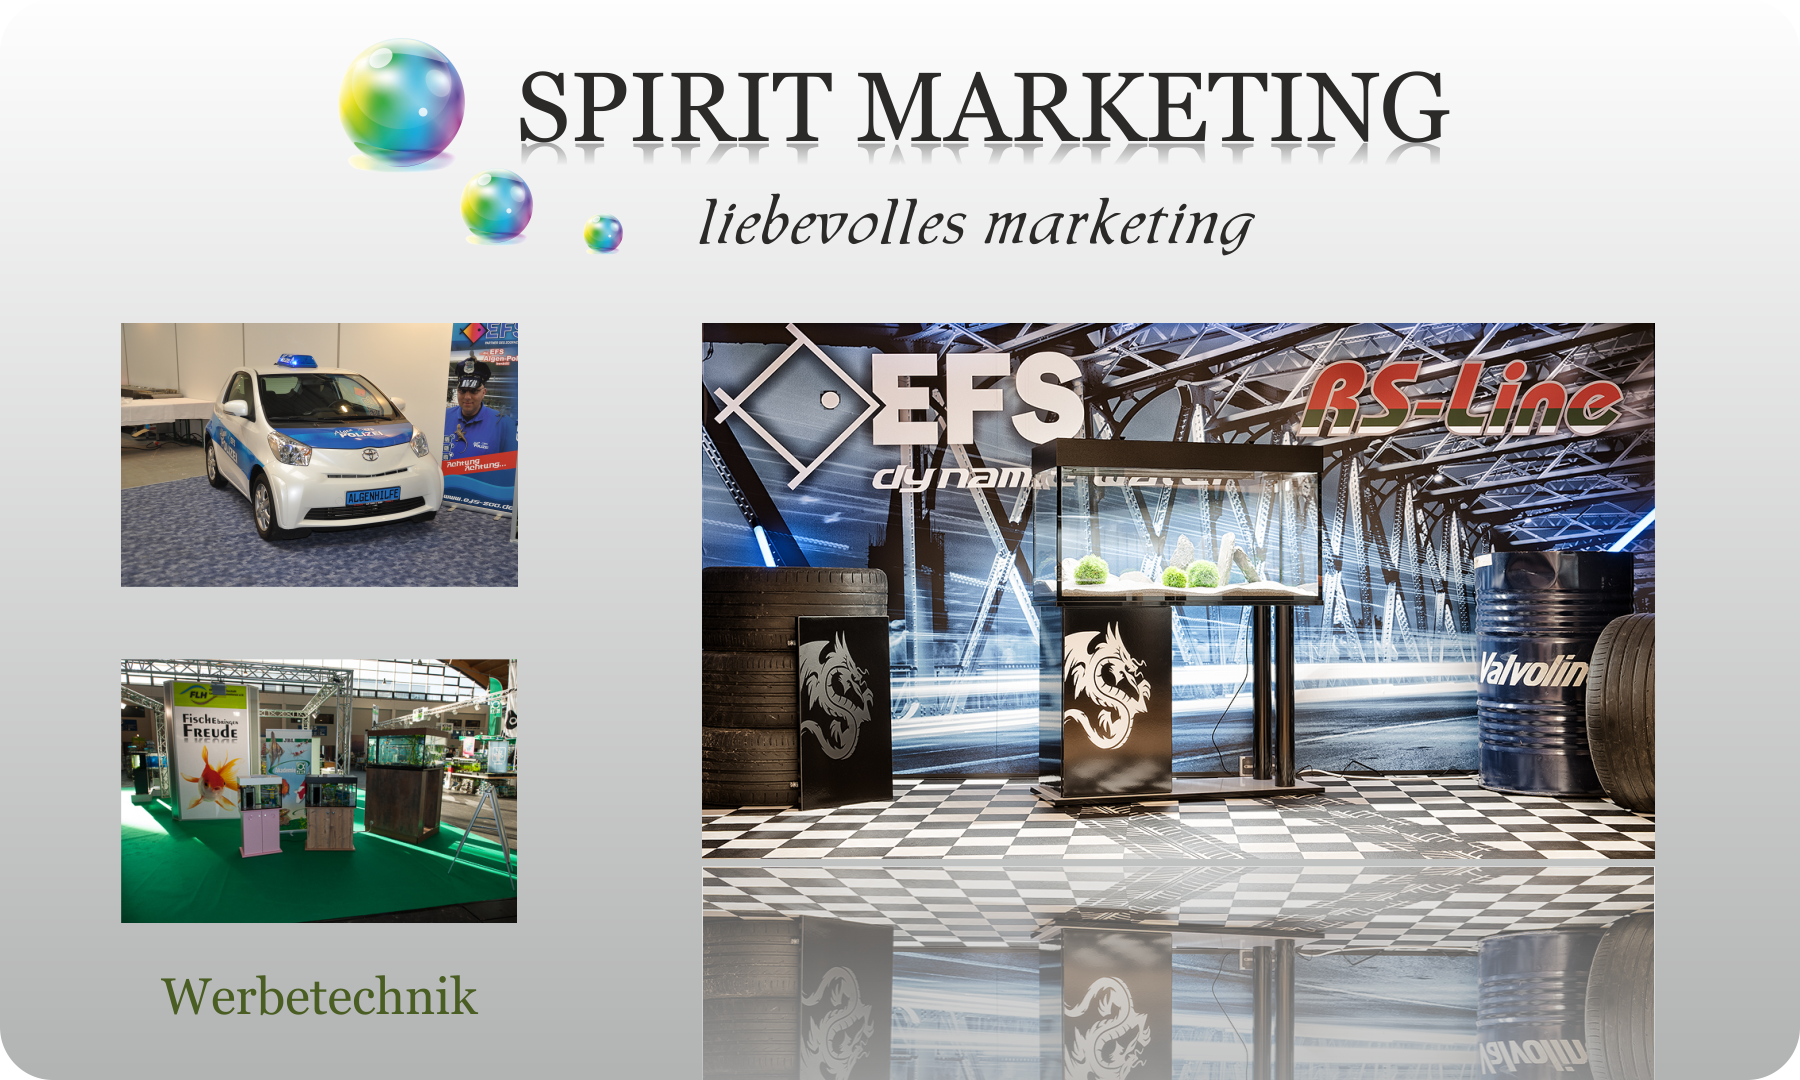 SPIRIT MARKETING - Werbetechnik